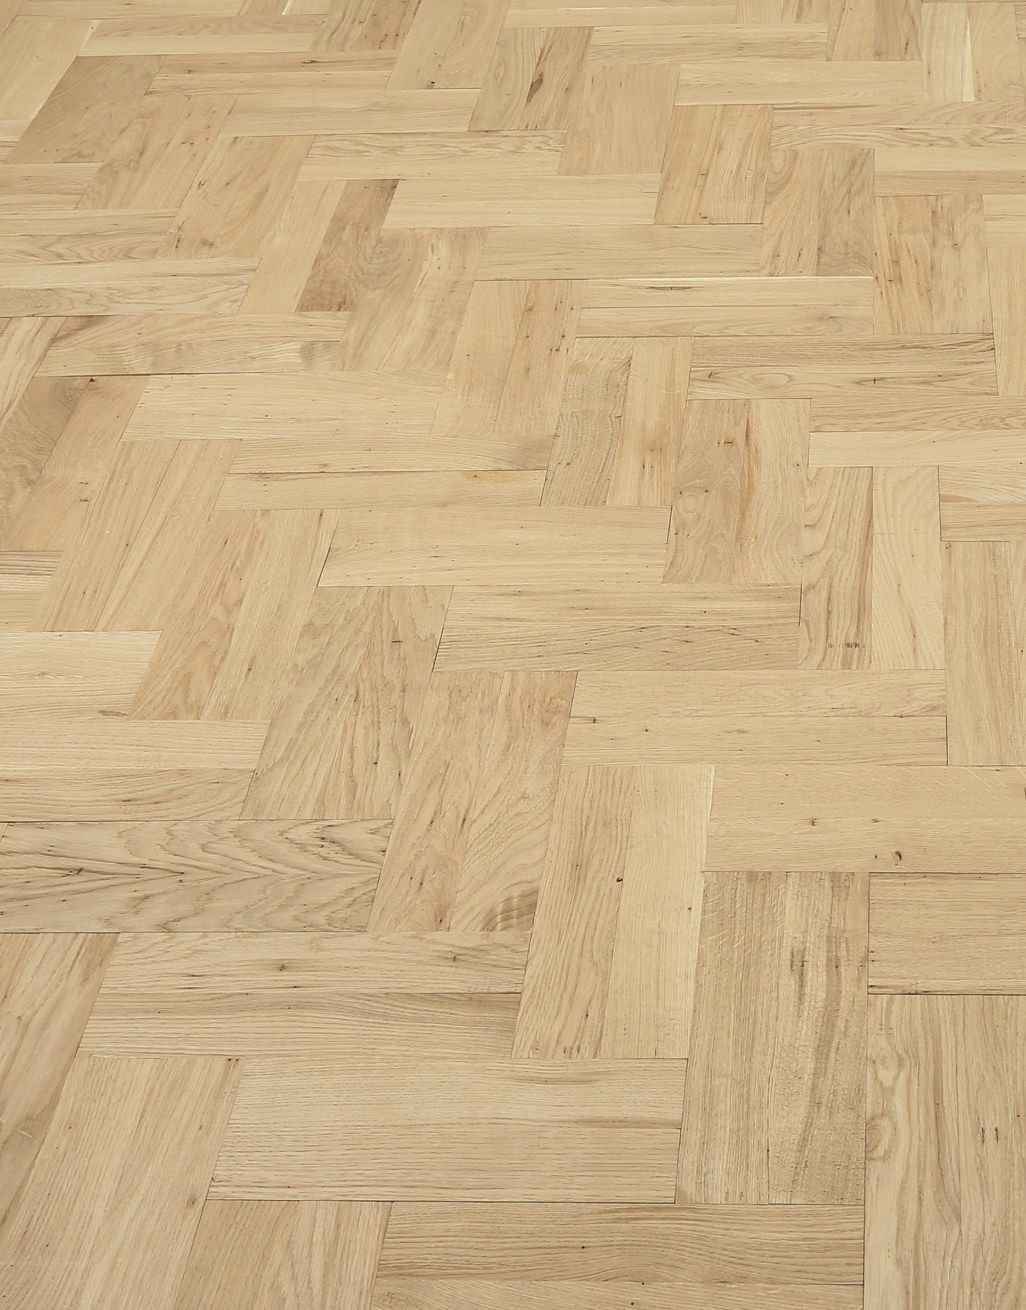 Solid Parquet Block Unfinished Solid Wood Flooring Direct Wood